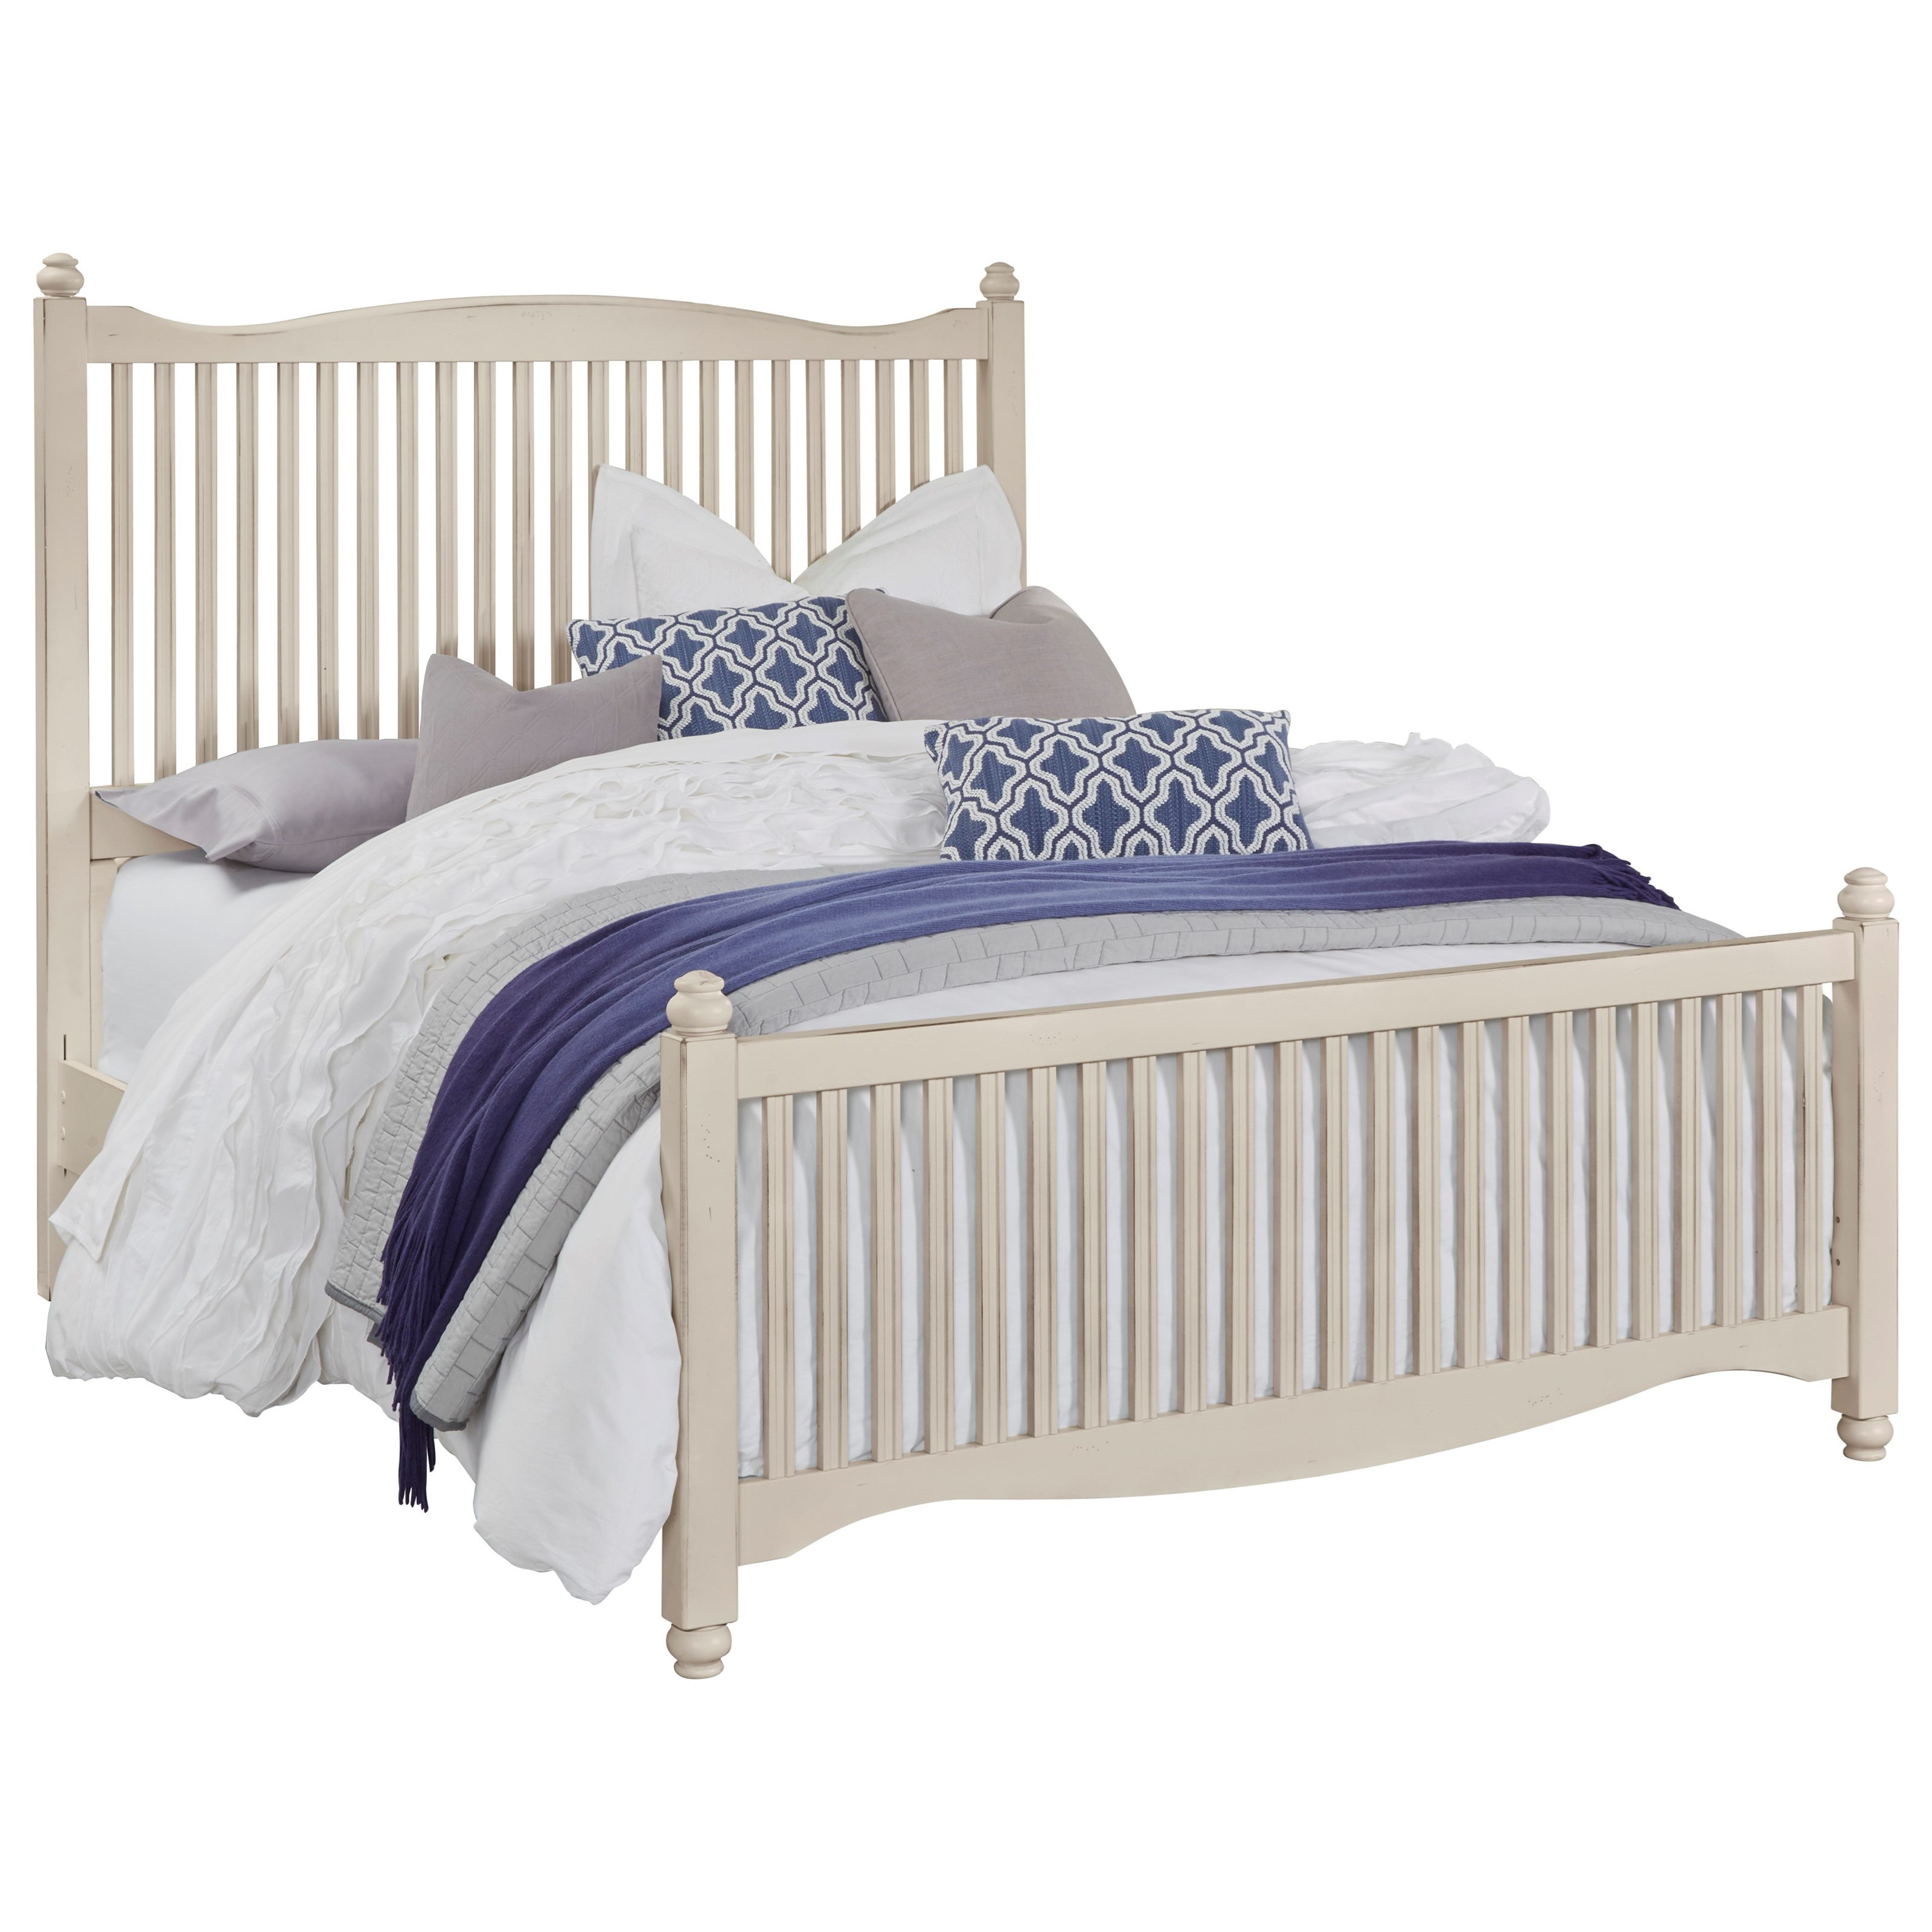 Vaughan Bassett American Maple Queen Slat Bed - Item Number: 404-557+755+922